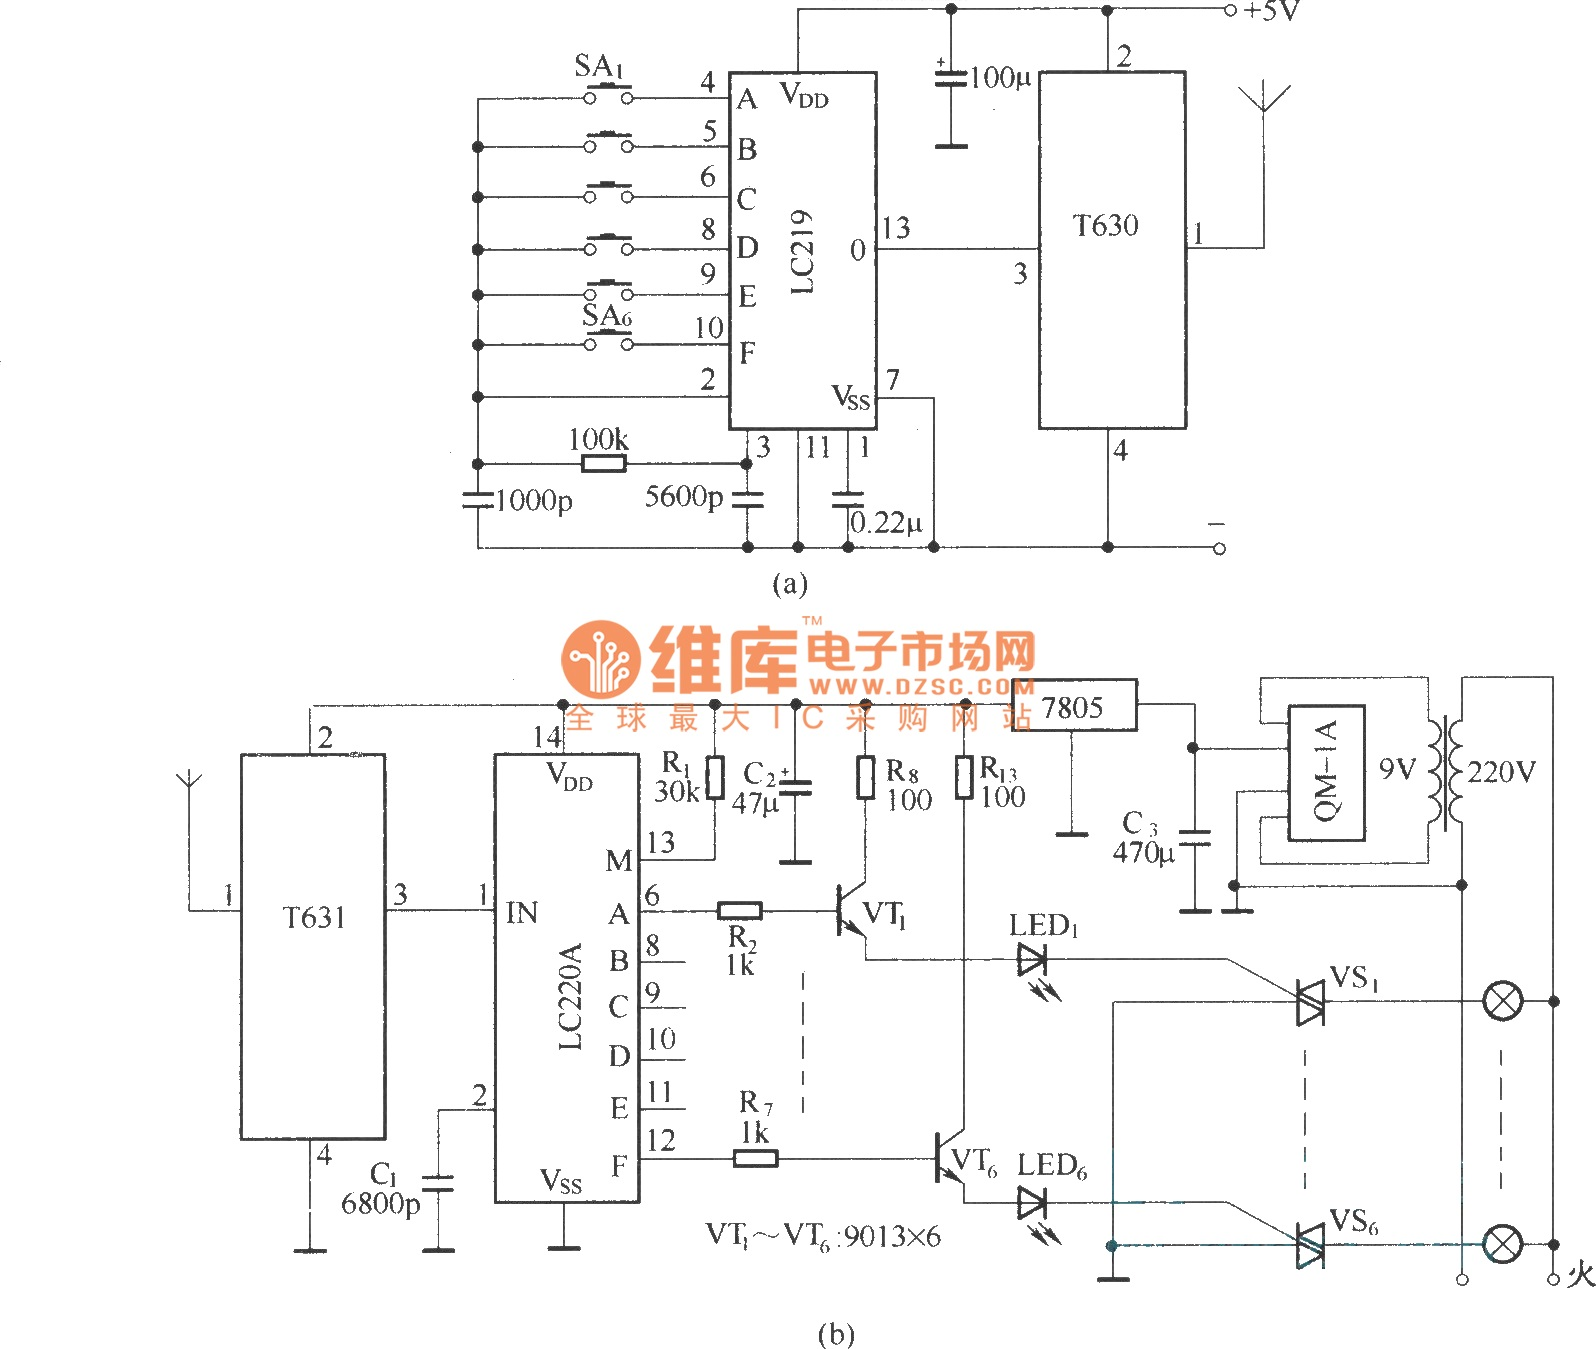 Top Circuits Page 232 5v 3a Switchingregulatorcircuit Powersupplycircuit Circuit Composed Of T630 T631 Long Wave Wireless Remote Control Diagram